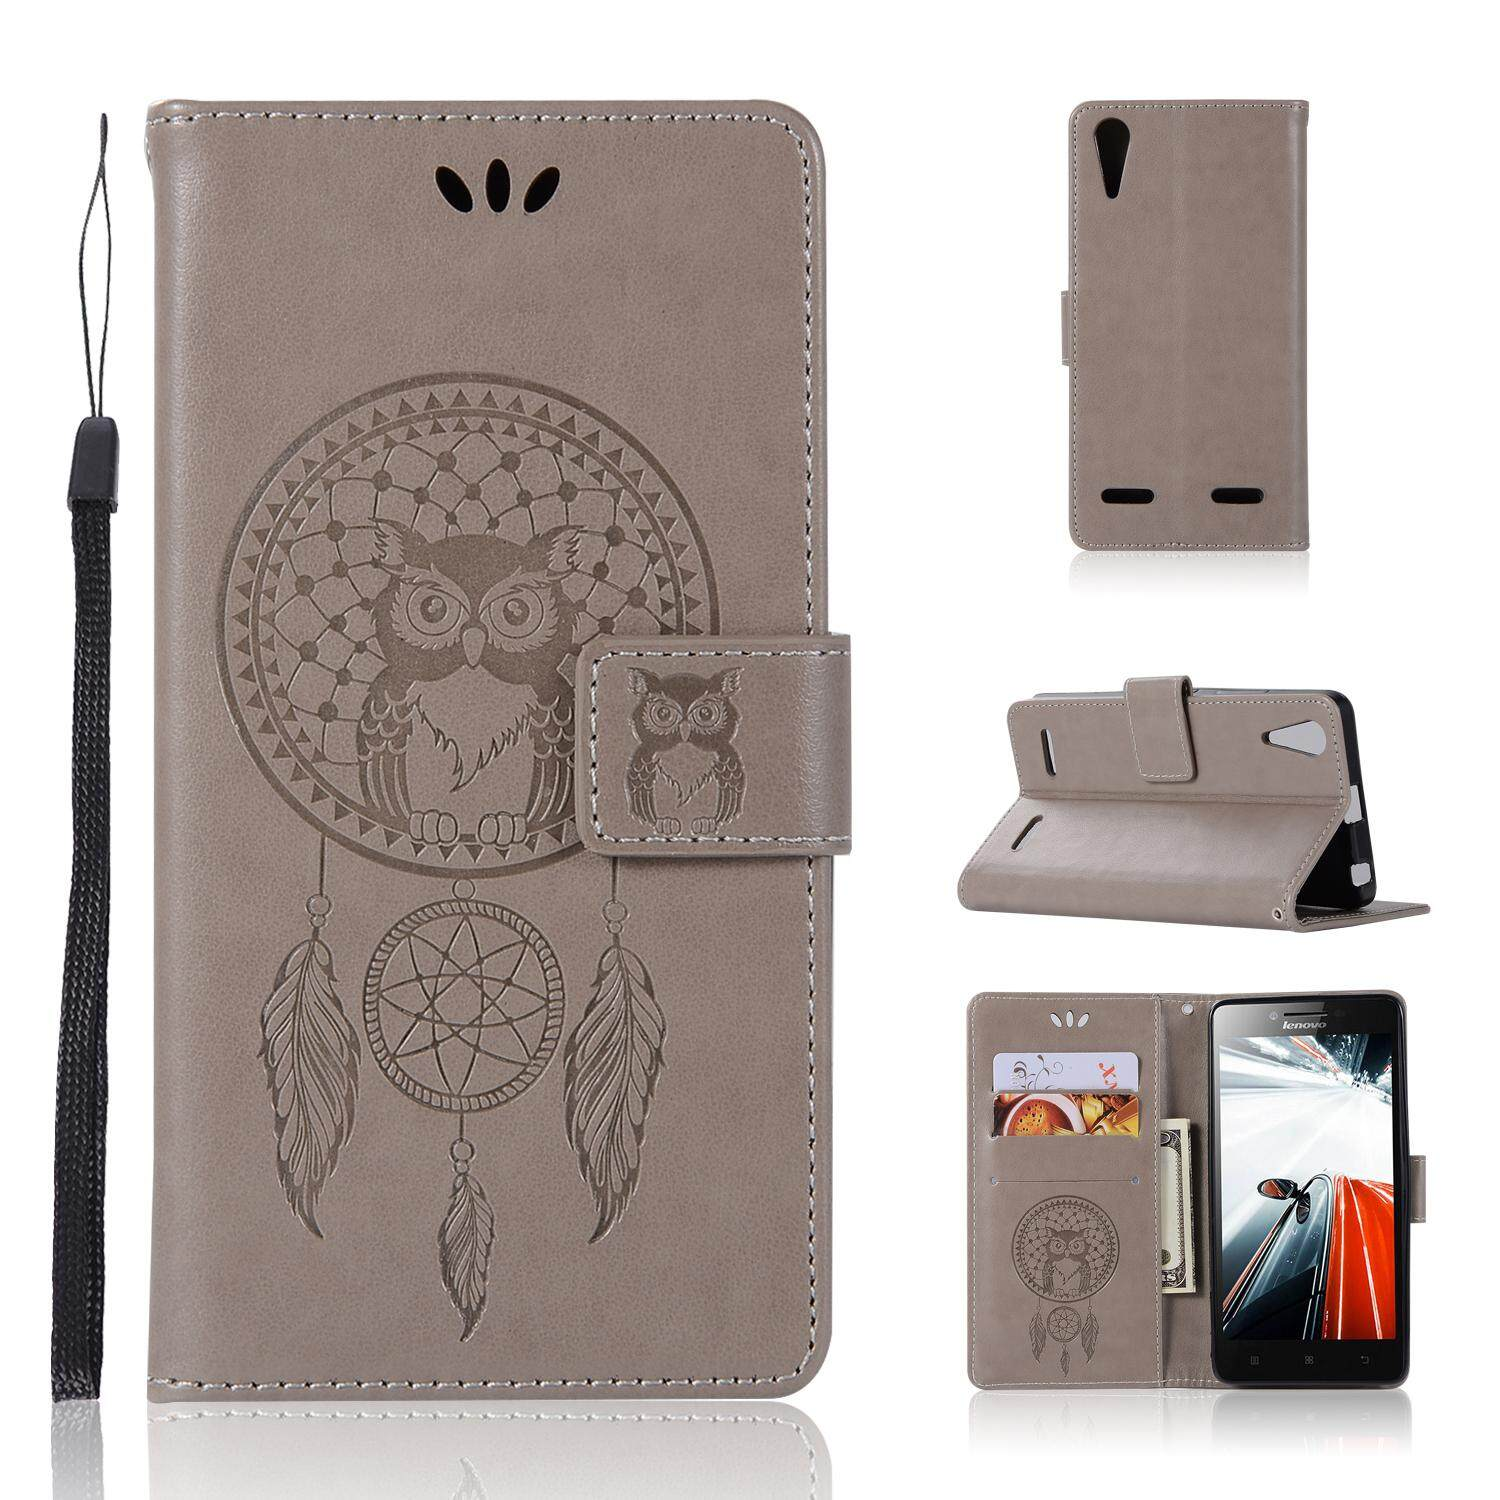 Luxury For Lenovo K3 / A6000 Casing , 3d Owl Embossing Leather Folio Flip Case Cover By Life Goes On